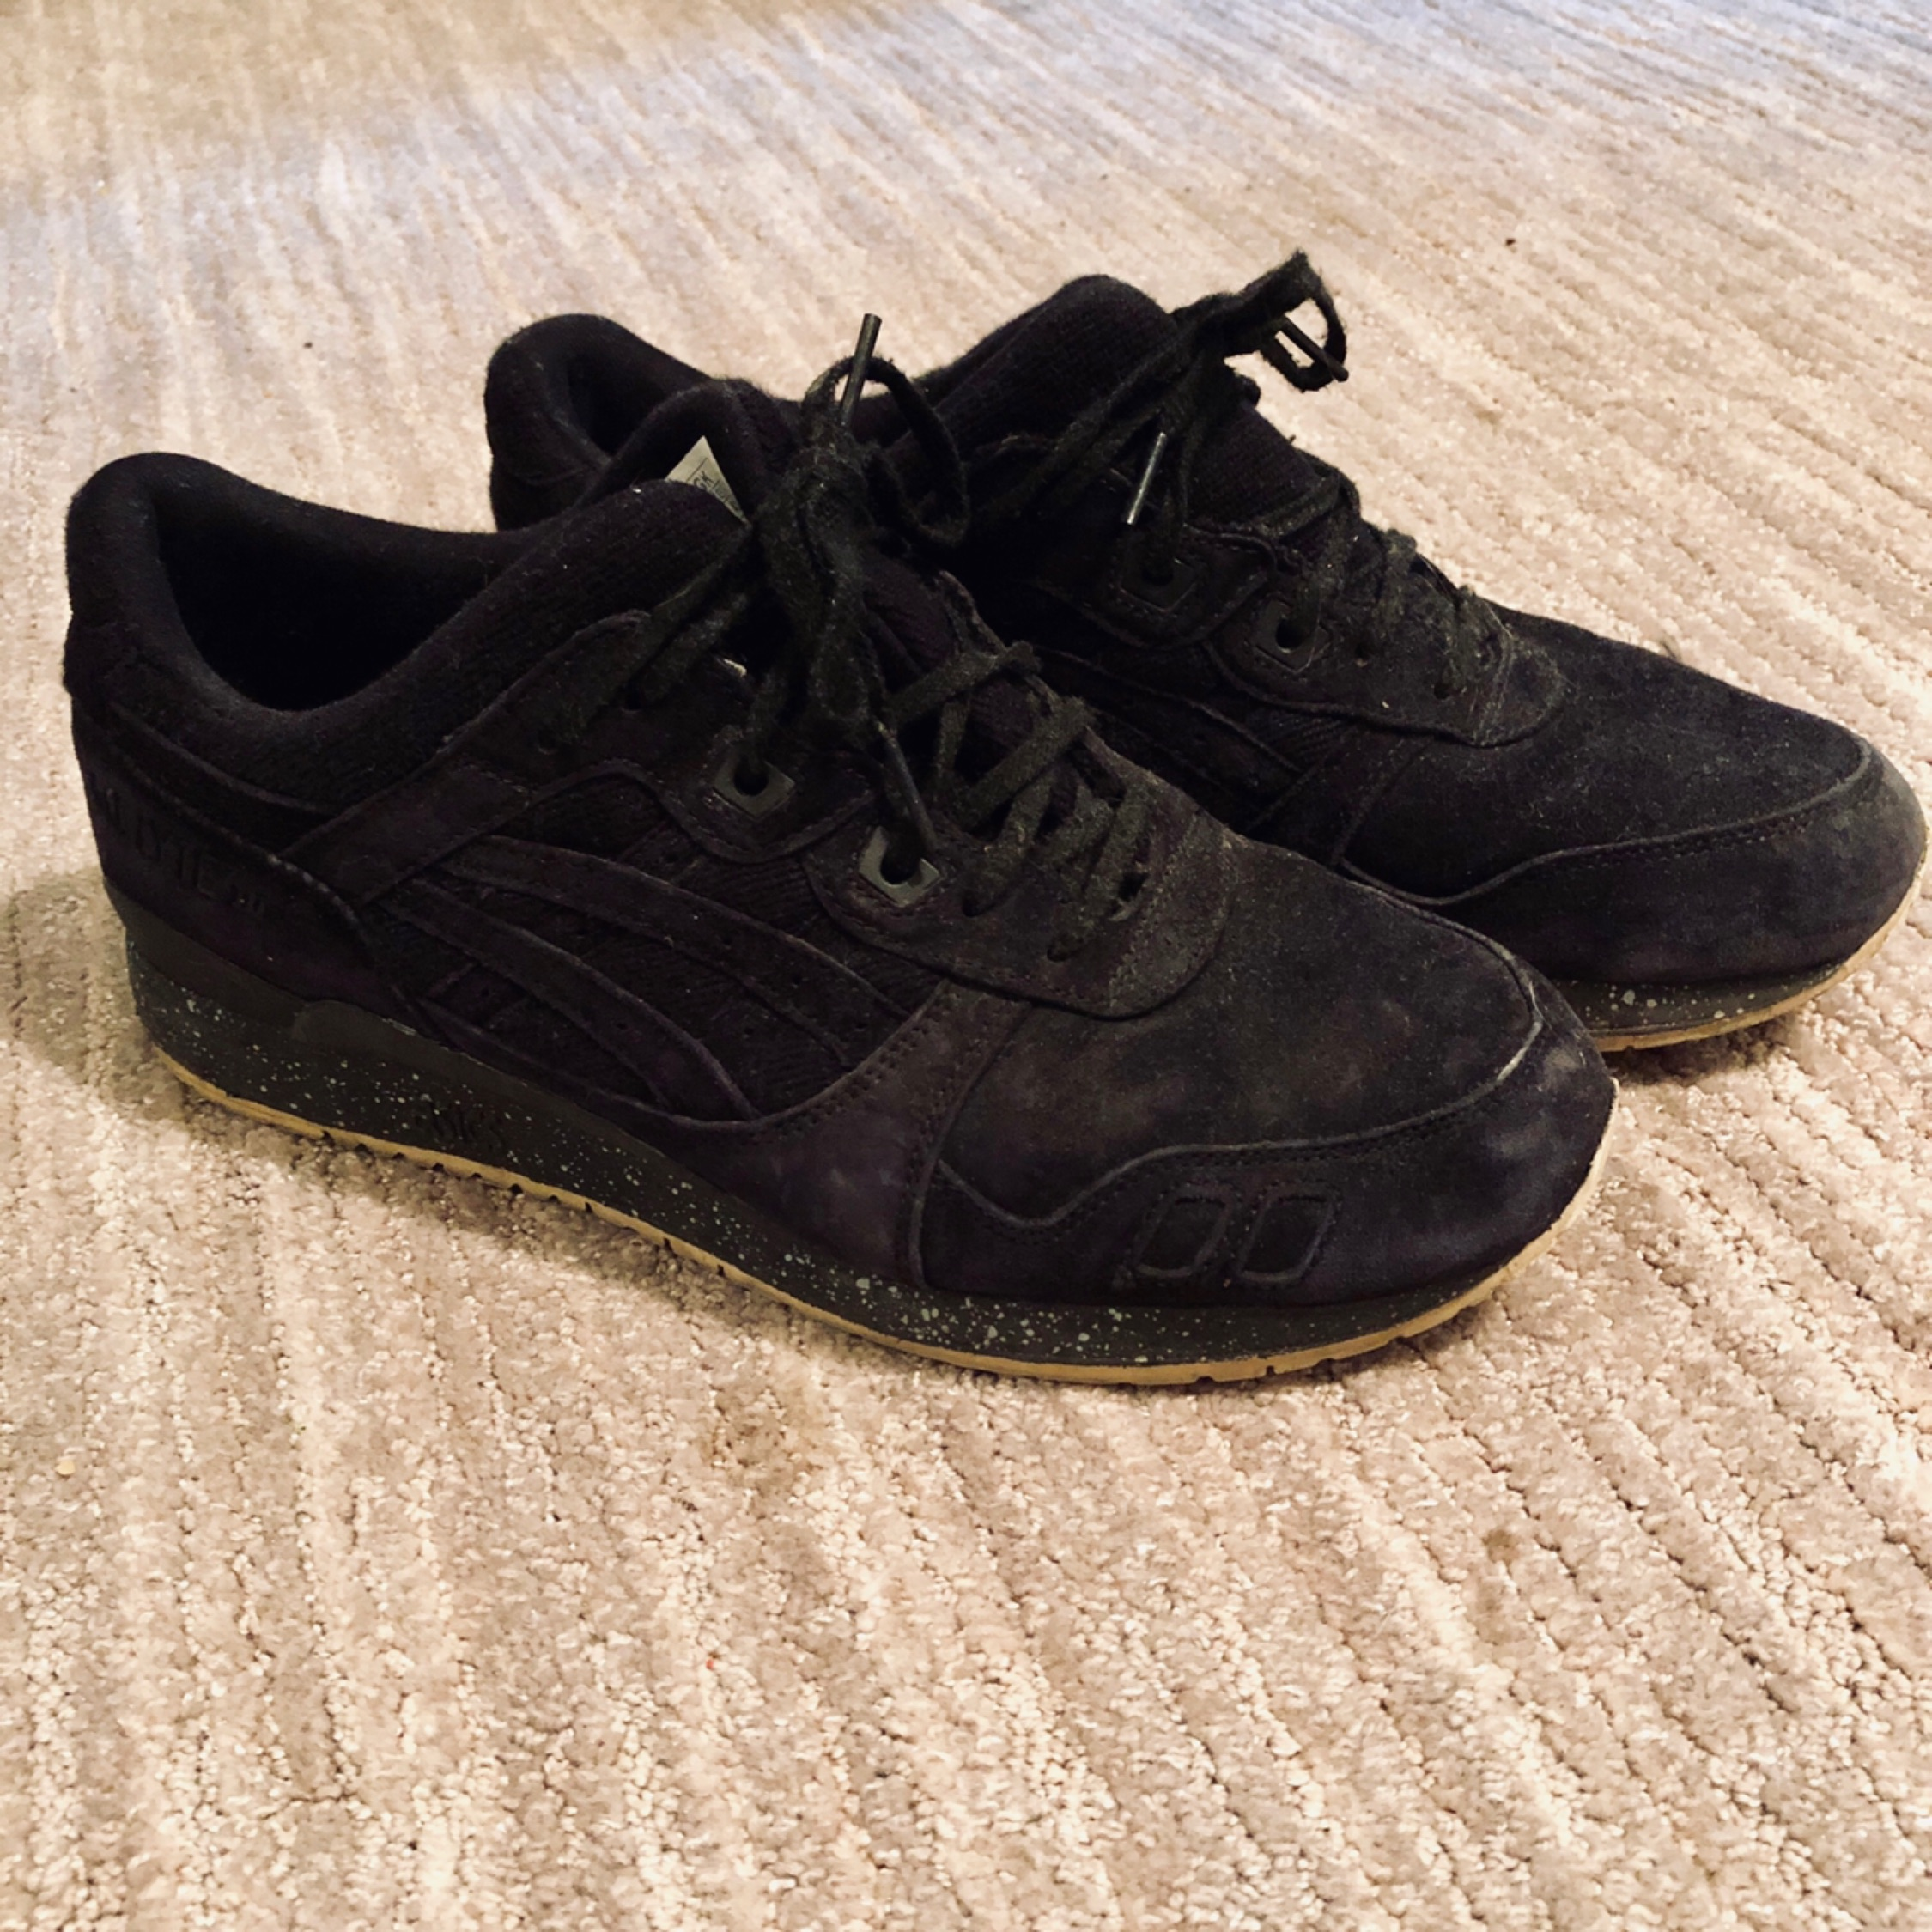 newest 1c0d1 2b2e0 Asics Gel-Lyte Iii X Reigning Champ (Black)